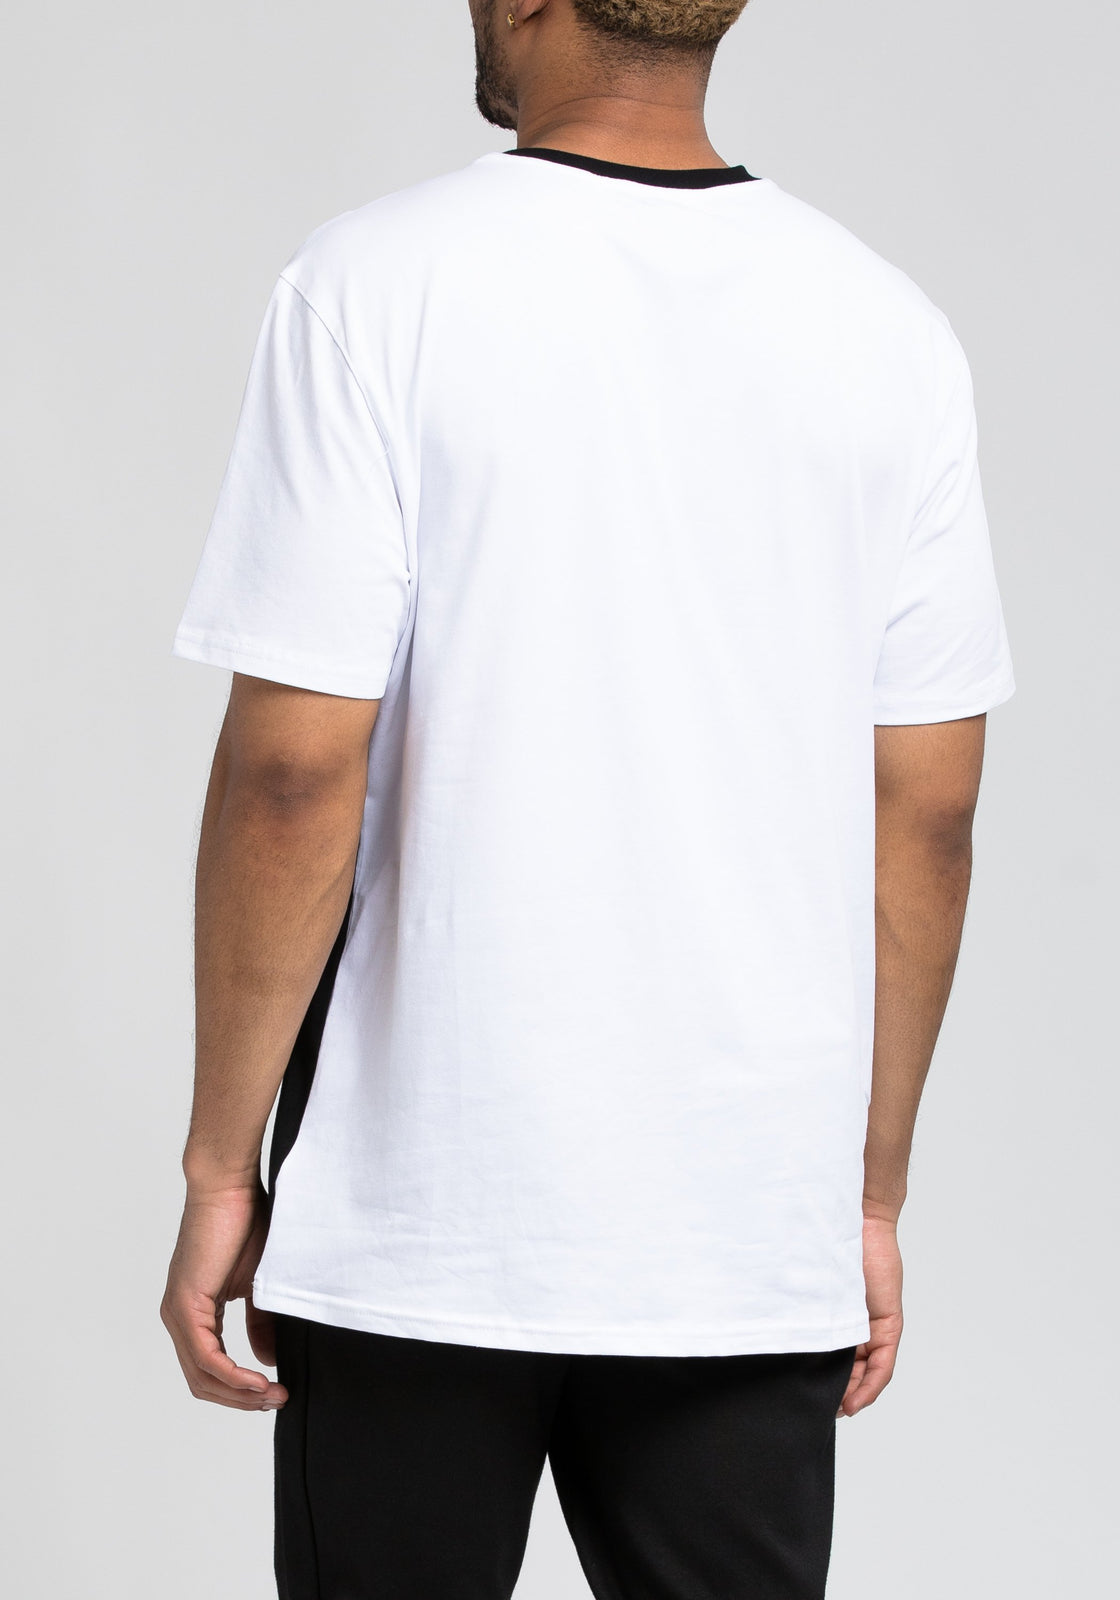 BP Cut and Sew Tee - Color: Black